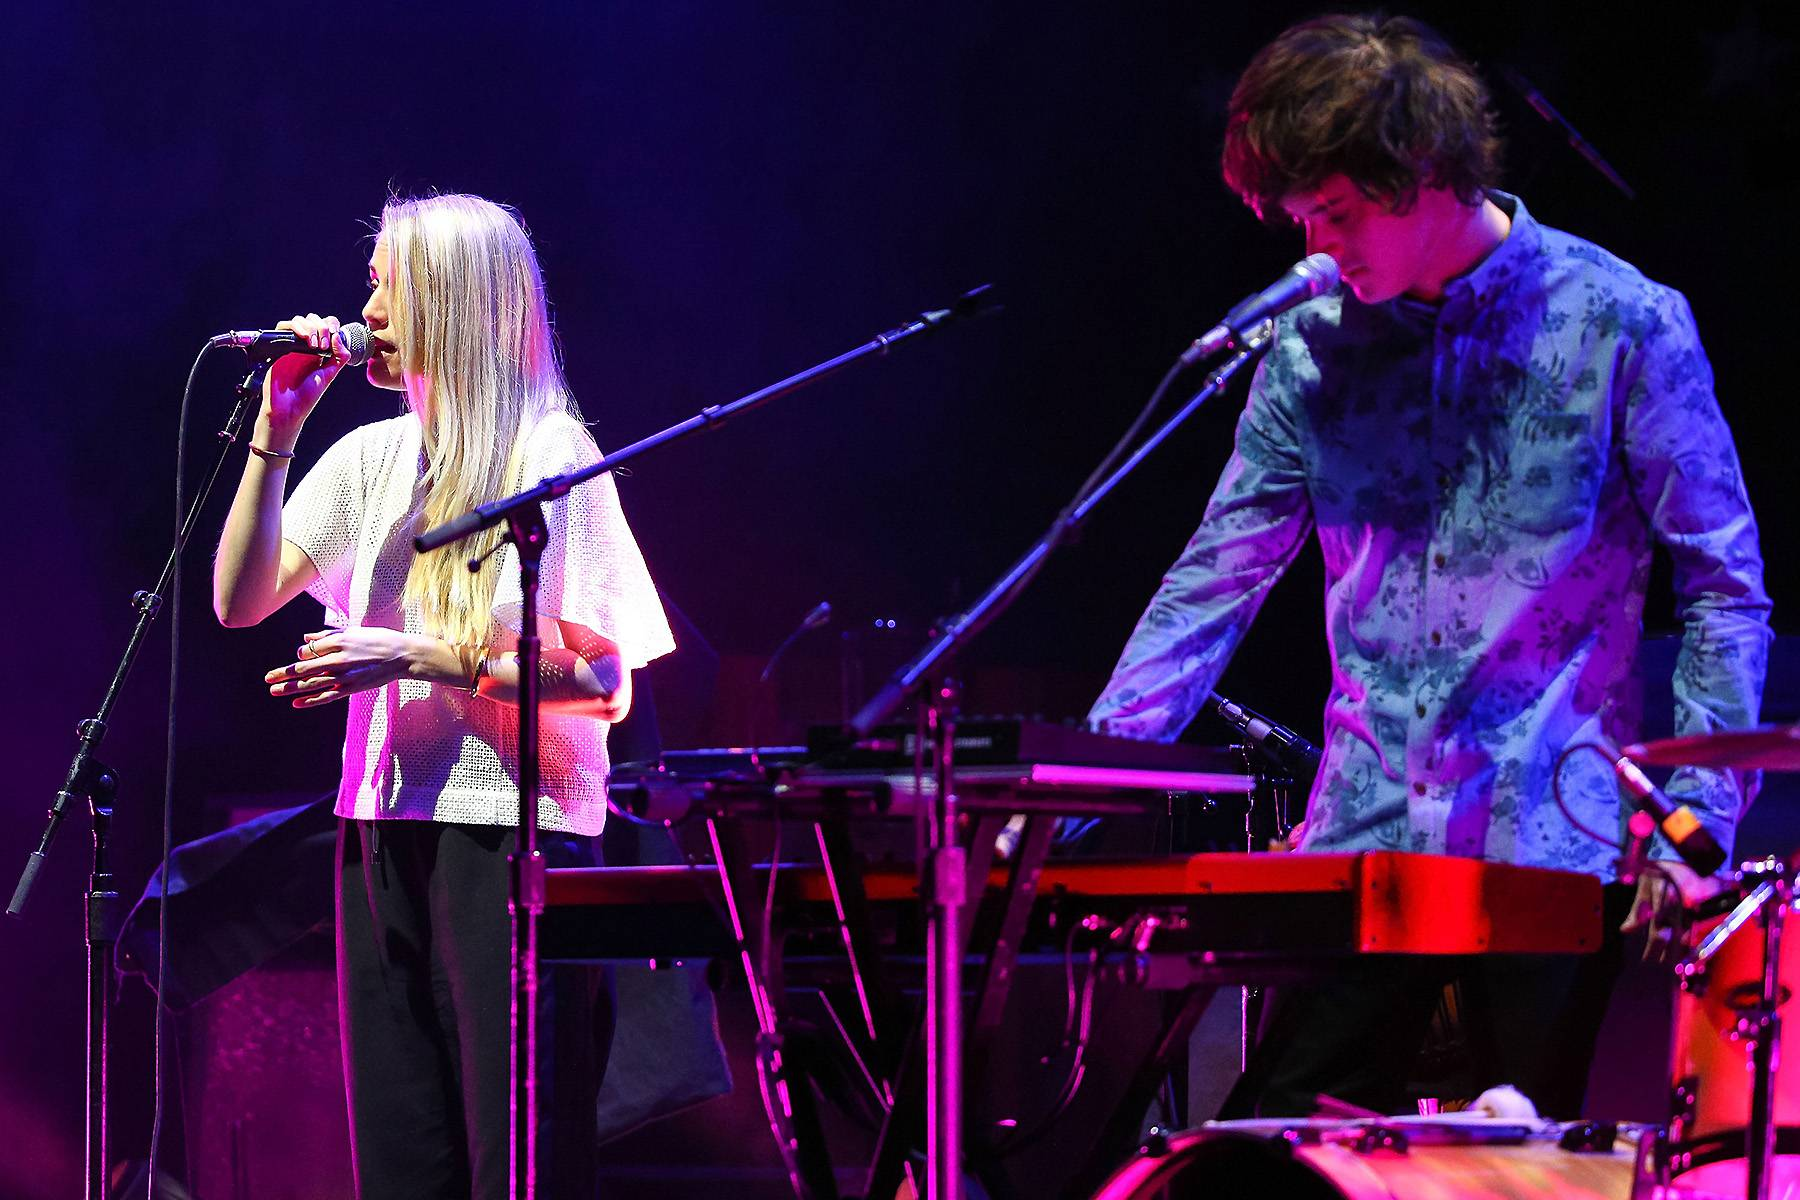 'Sights' by London Grammar - This set the tone for when Mark revealed his break up with Eric to Mary Jane.   (Photo: Imeh Akpanudosen/Getty Images)